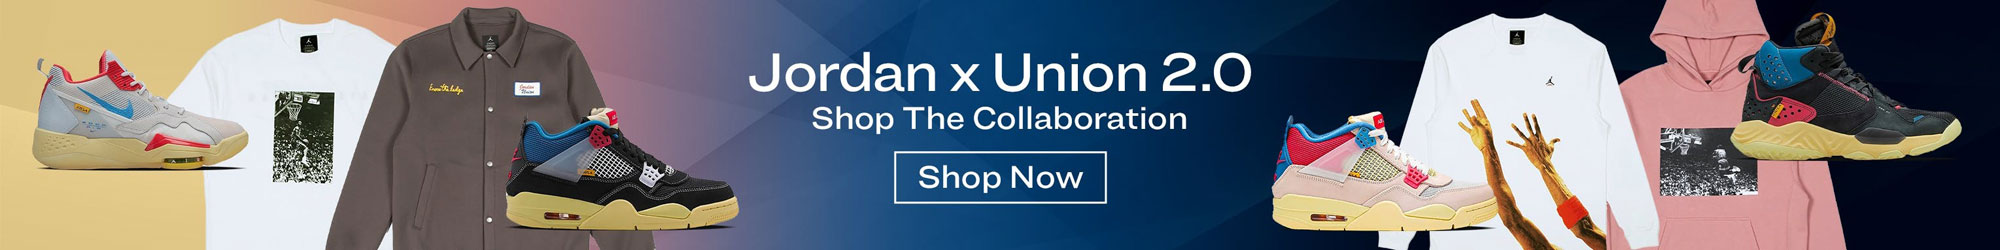 jordan-4-union-collection-where-to-buy